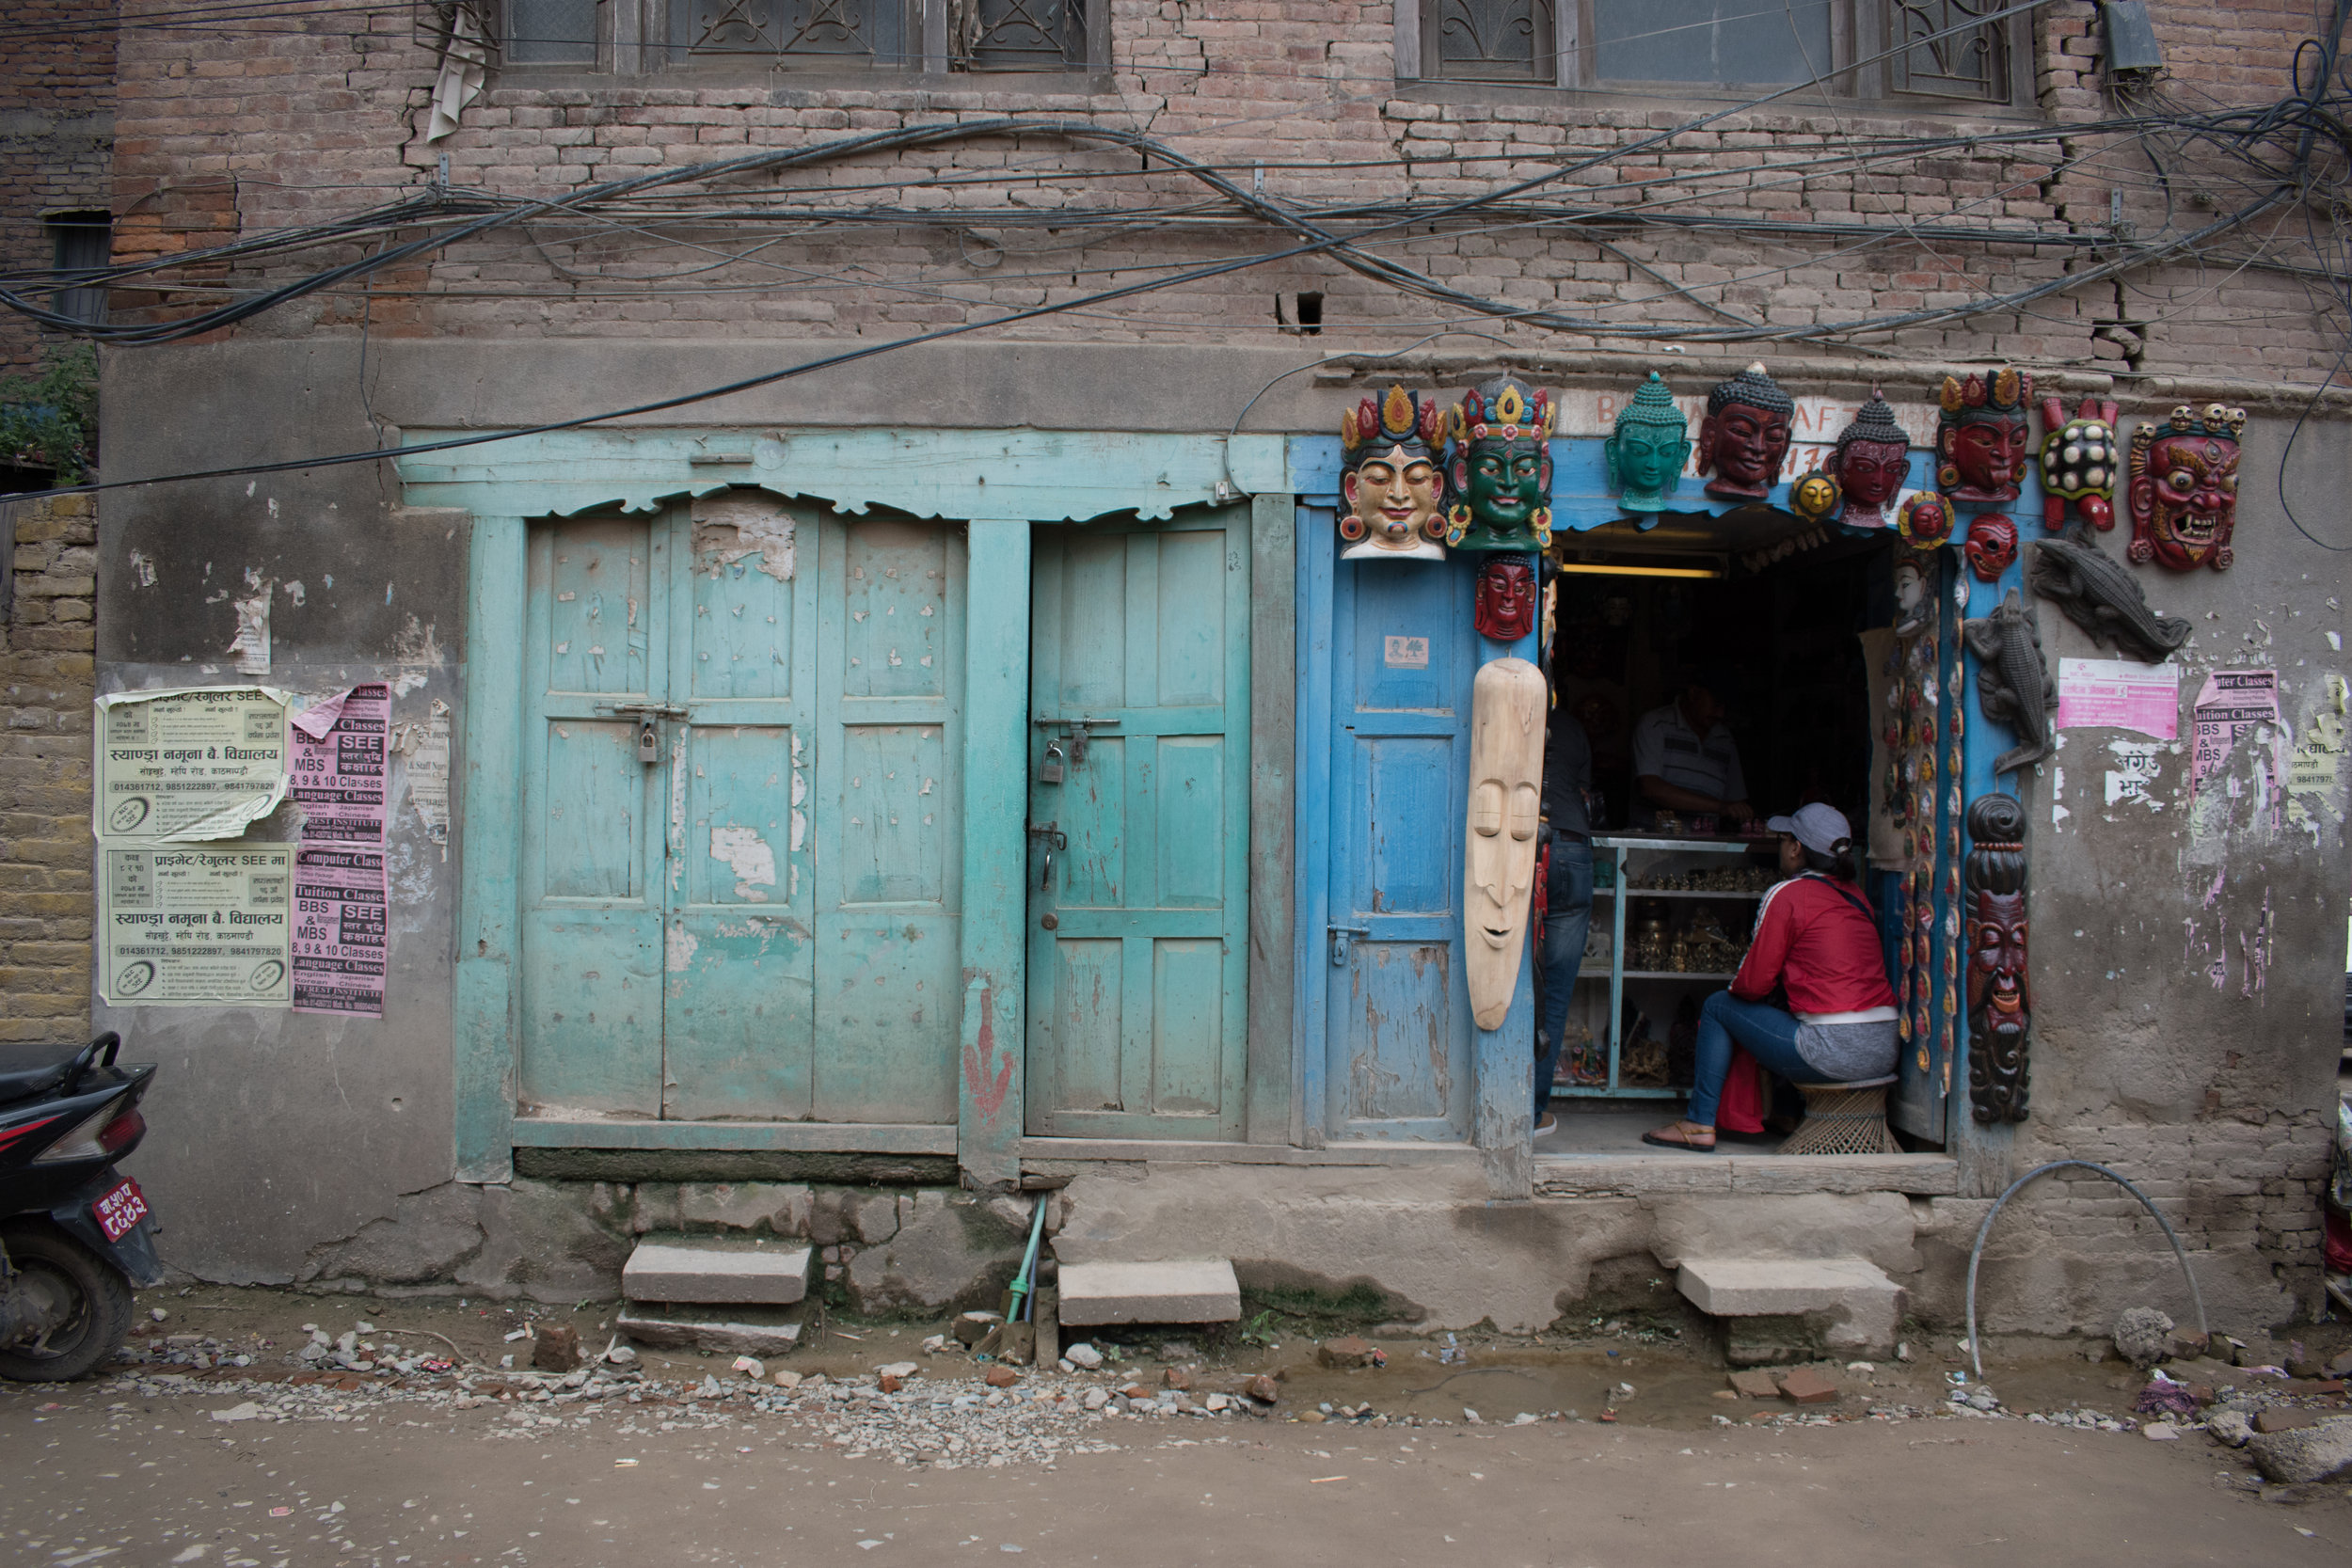 I Love The Colour Of These Doors - Street Scenes in Kathmandu, Nepal